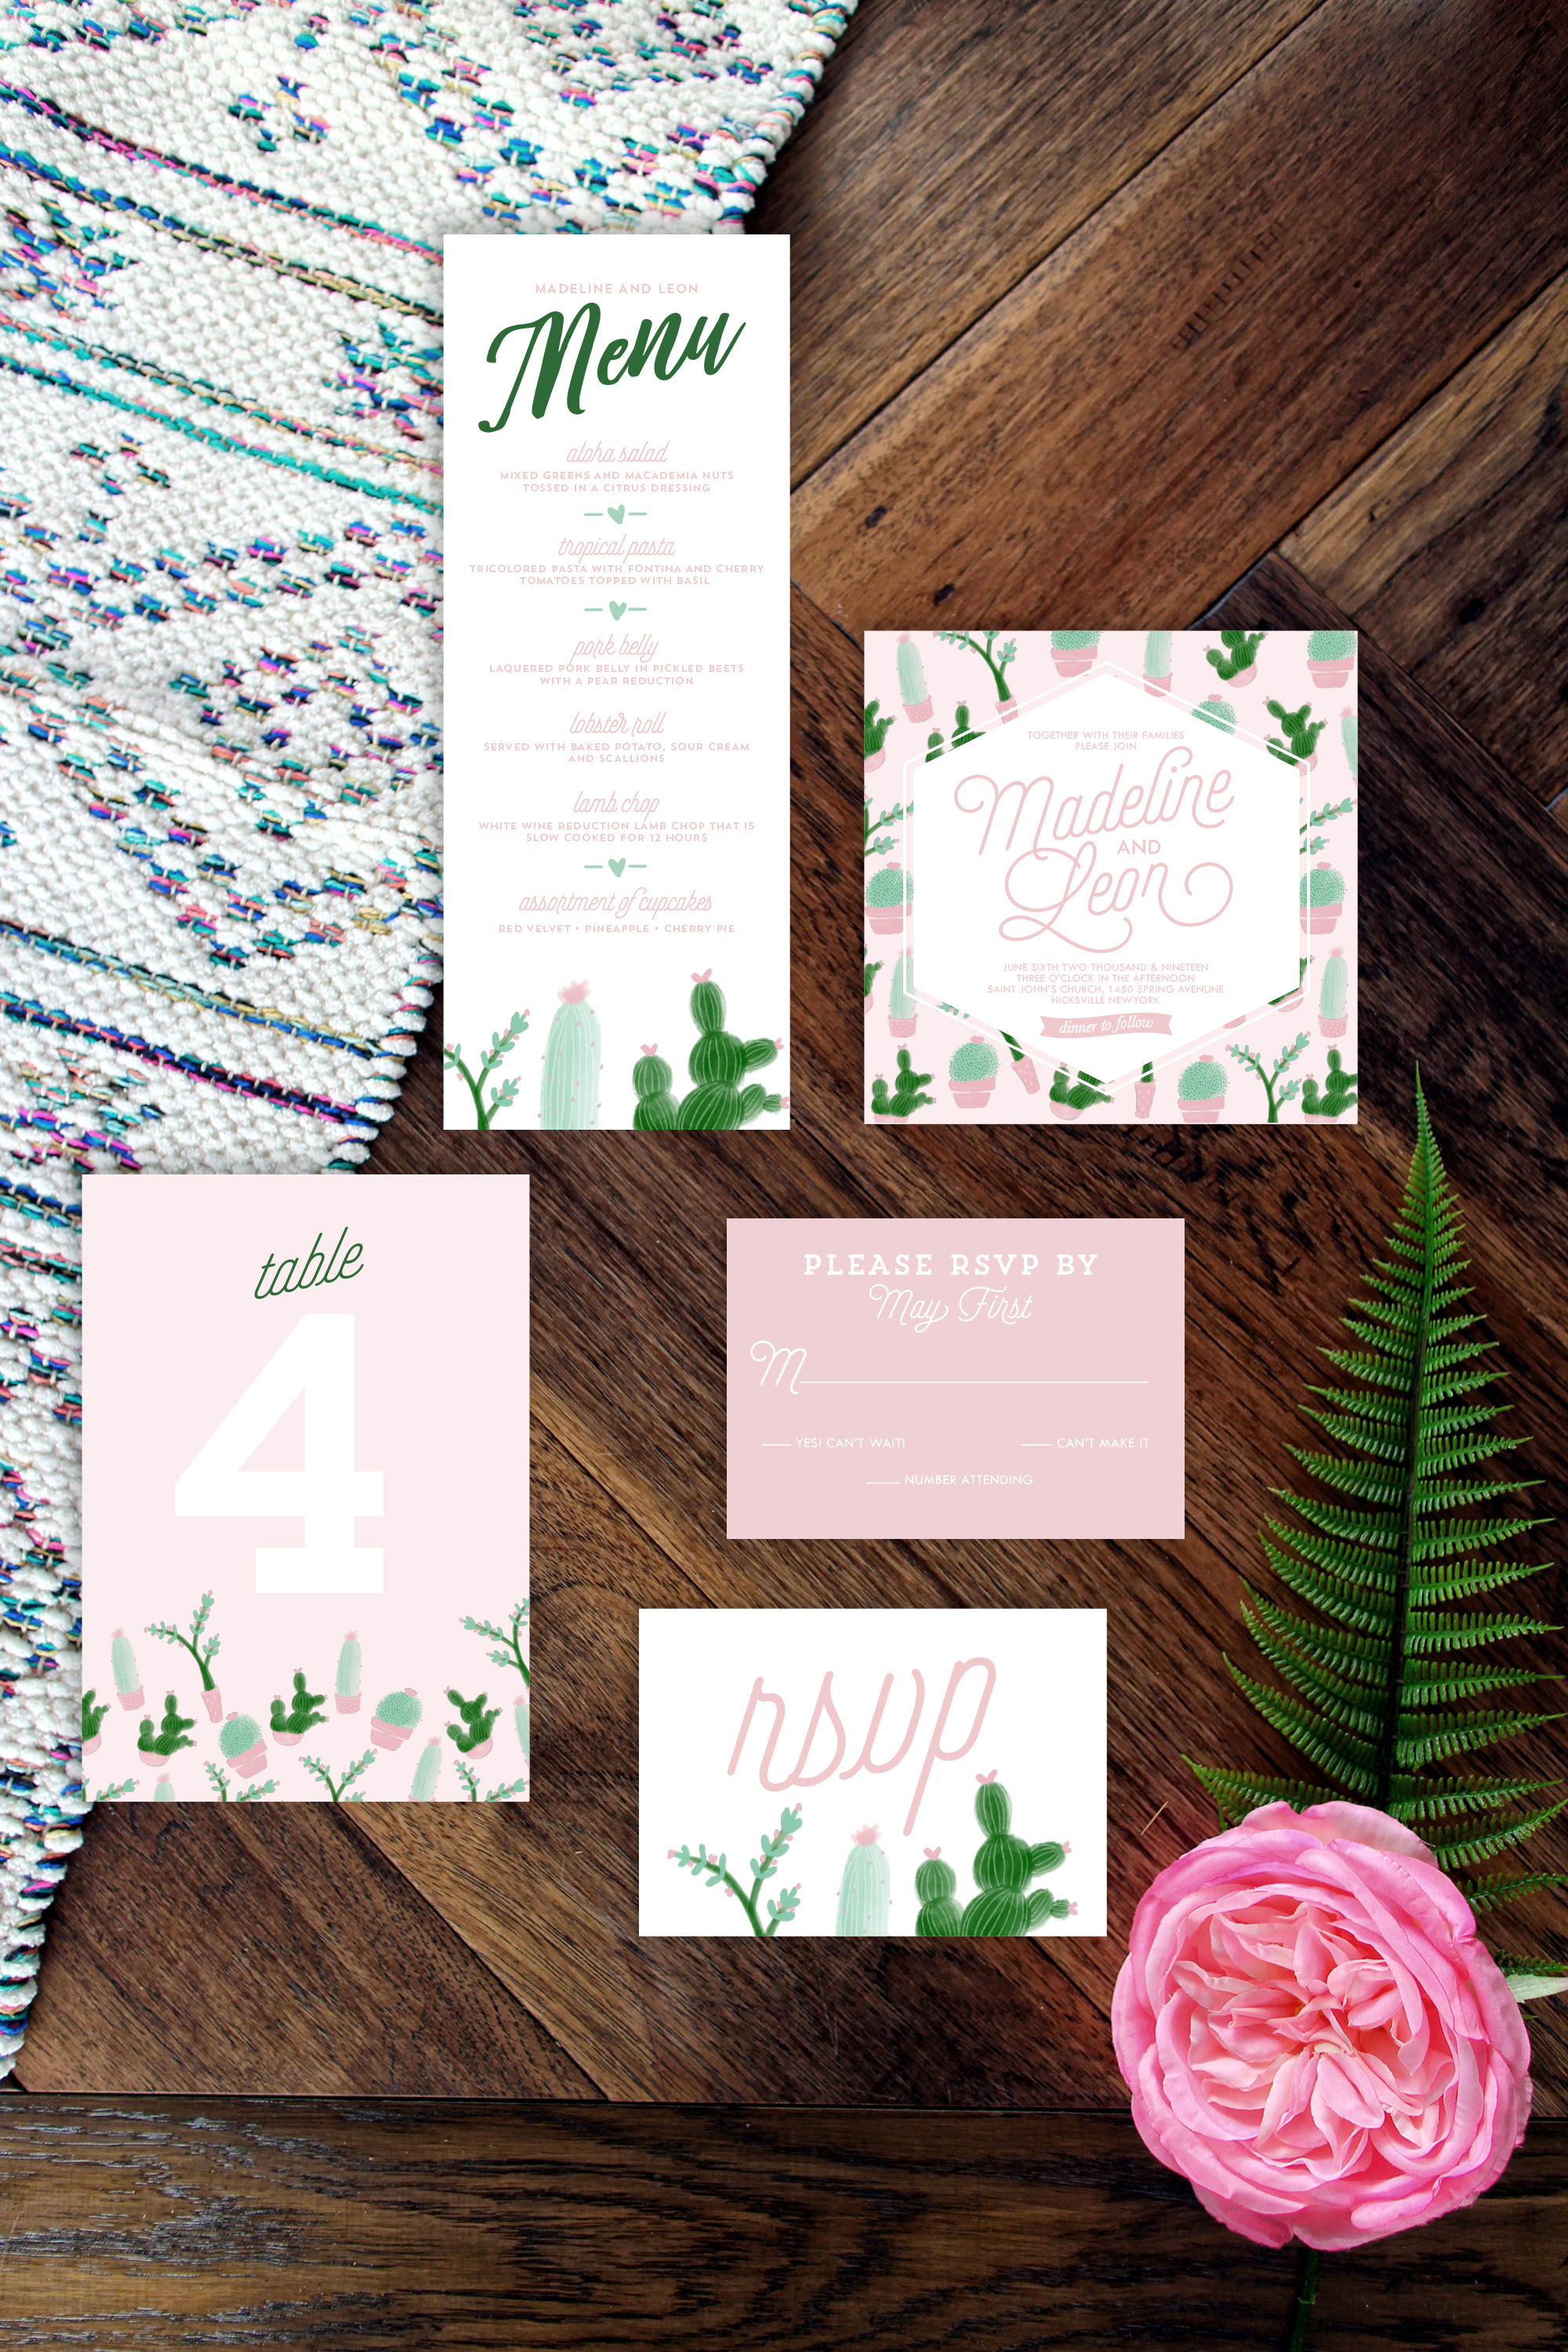 Cactus and Succulent Suite in Blush Pinks and Greens for Your Wedding and Evenet! YellowHeartArt.com @YellowHeartArt